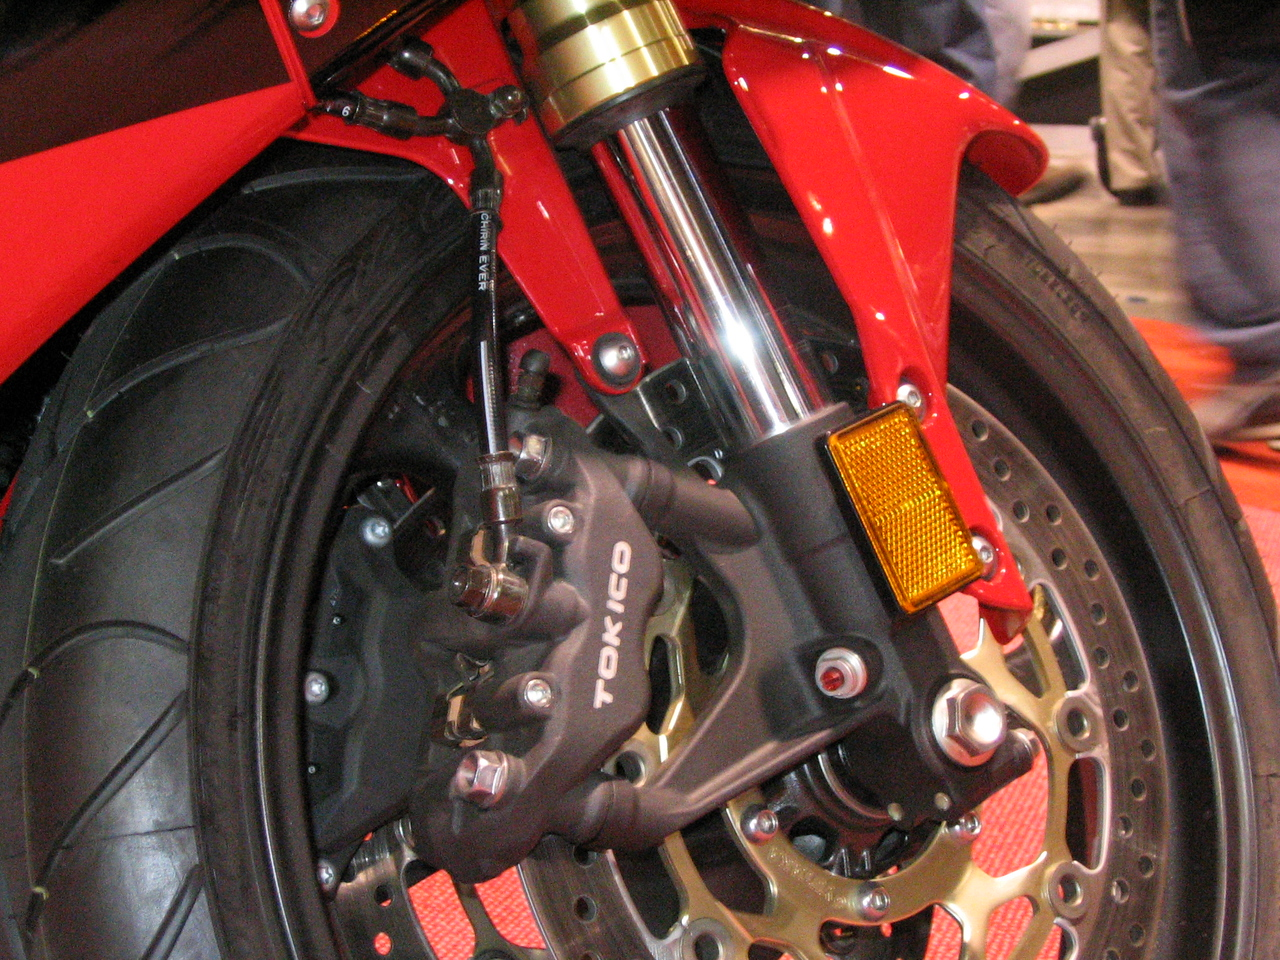 2005 600RR front end -- probably the best Honda bits for a complete Hawk front end transplant, at the moment anyways.